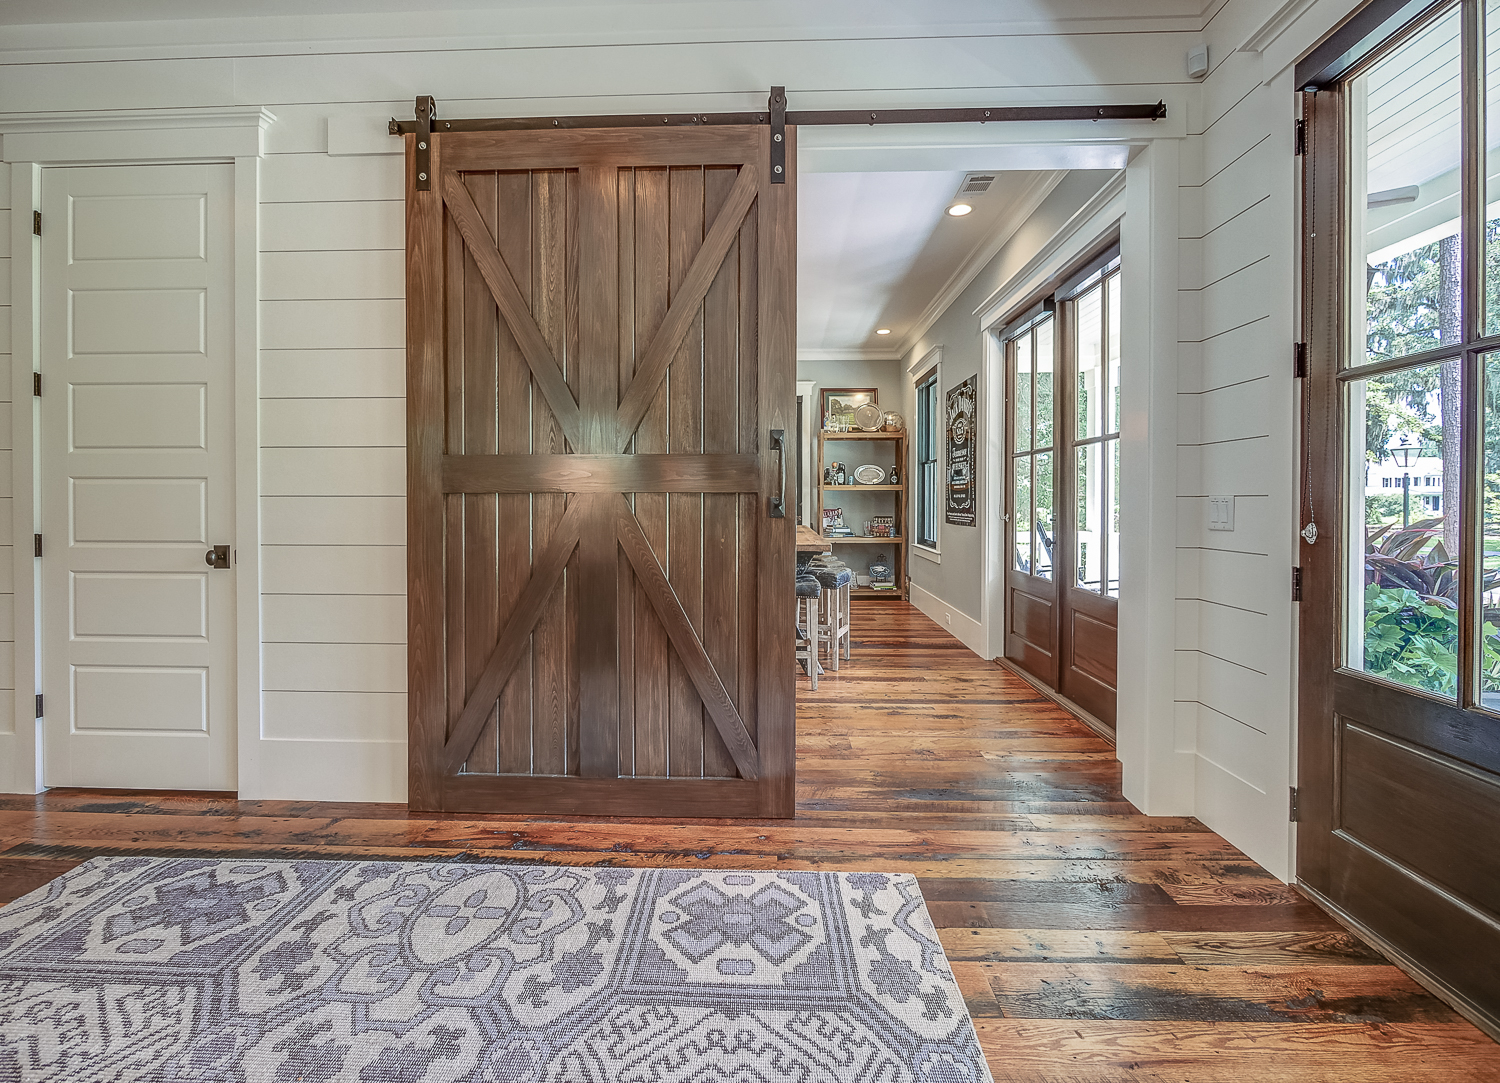 Palmetto Bluff Home with Sliding Barn Door by J Banks Design